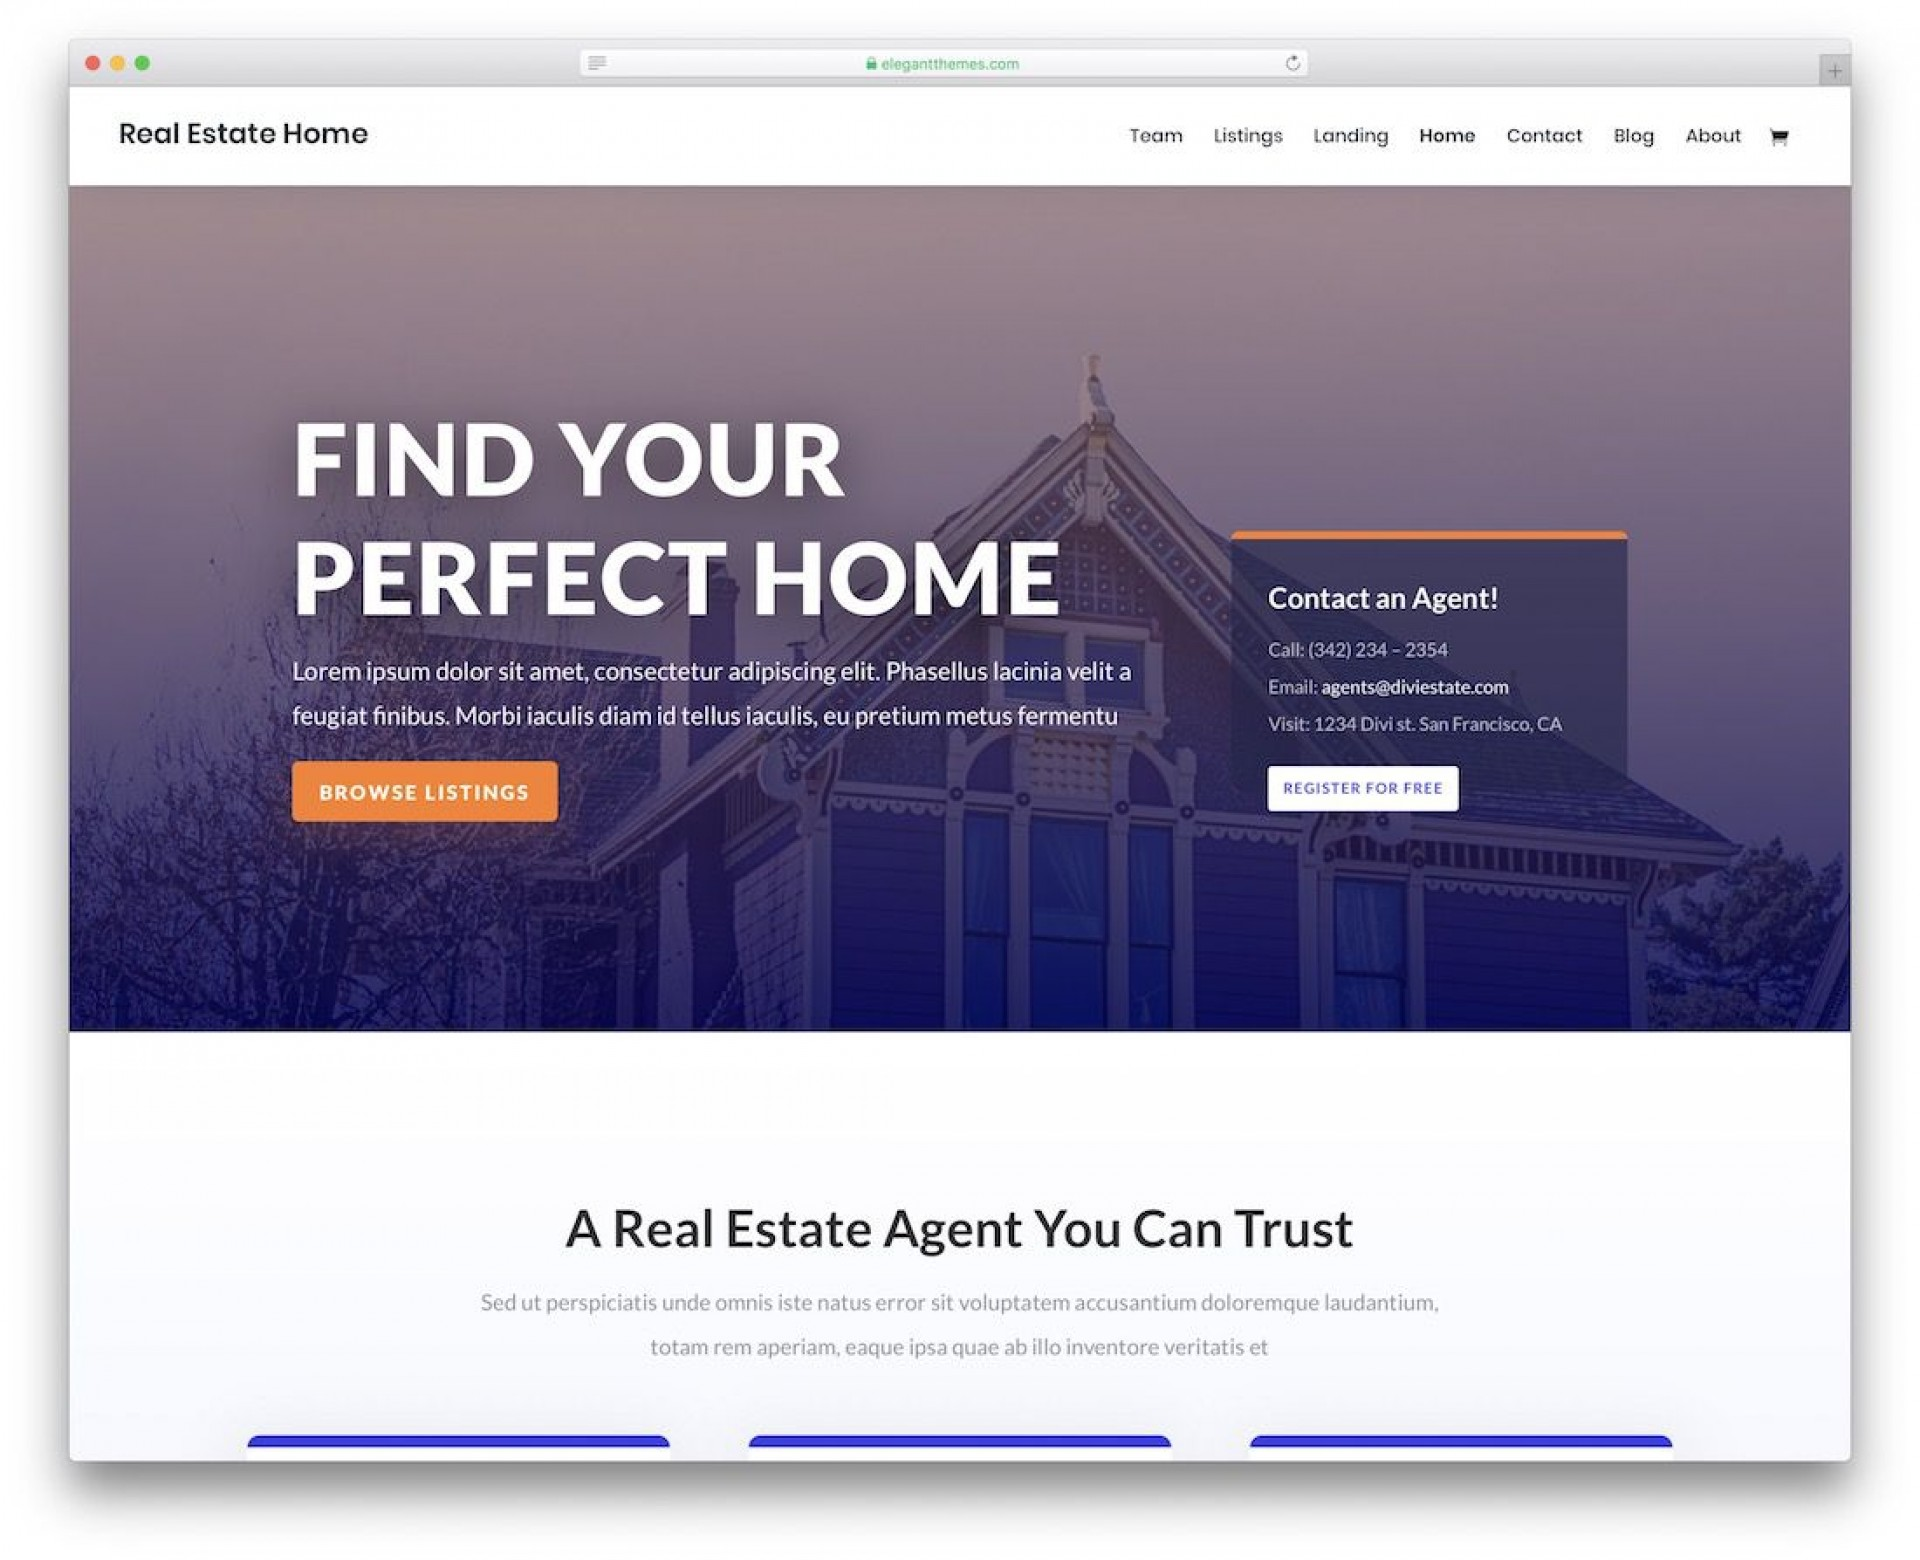 005 Amazing Real Estate Website Template Image  Templates Bootstrap Free Html5 Best Wordpres1920